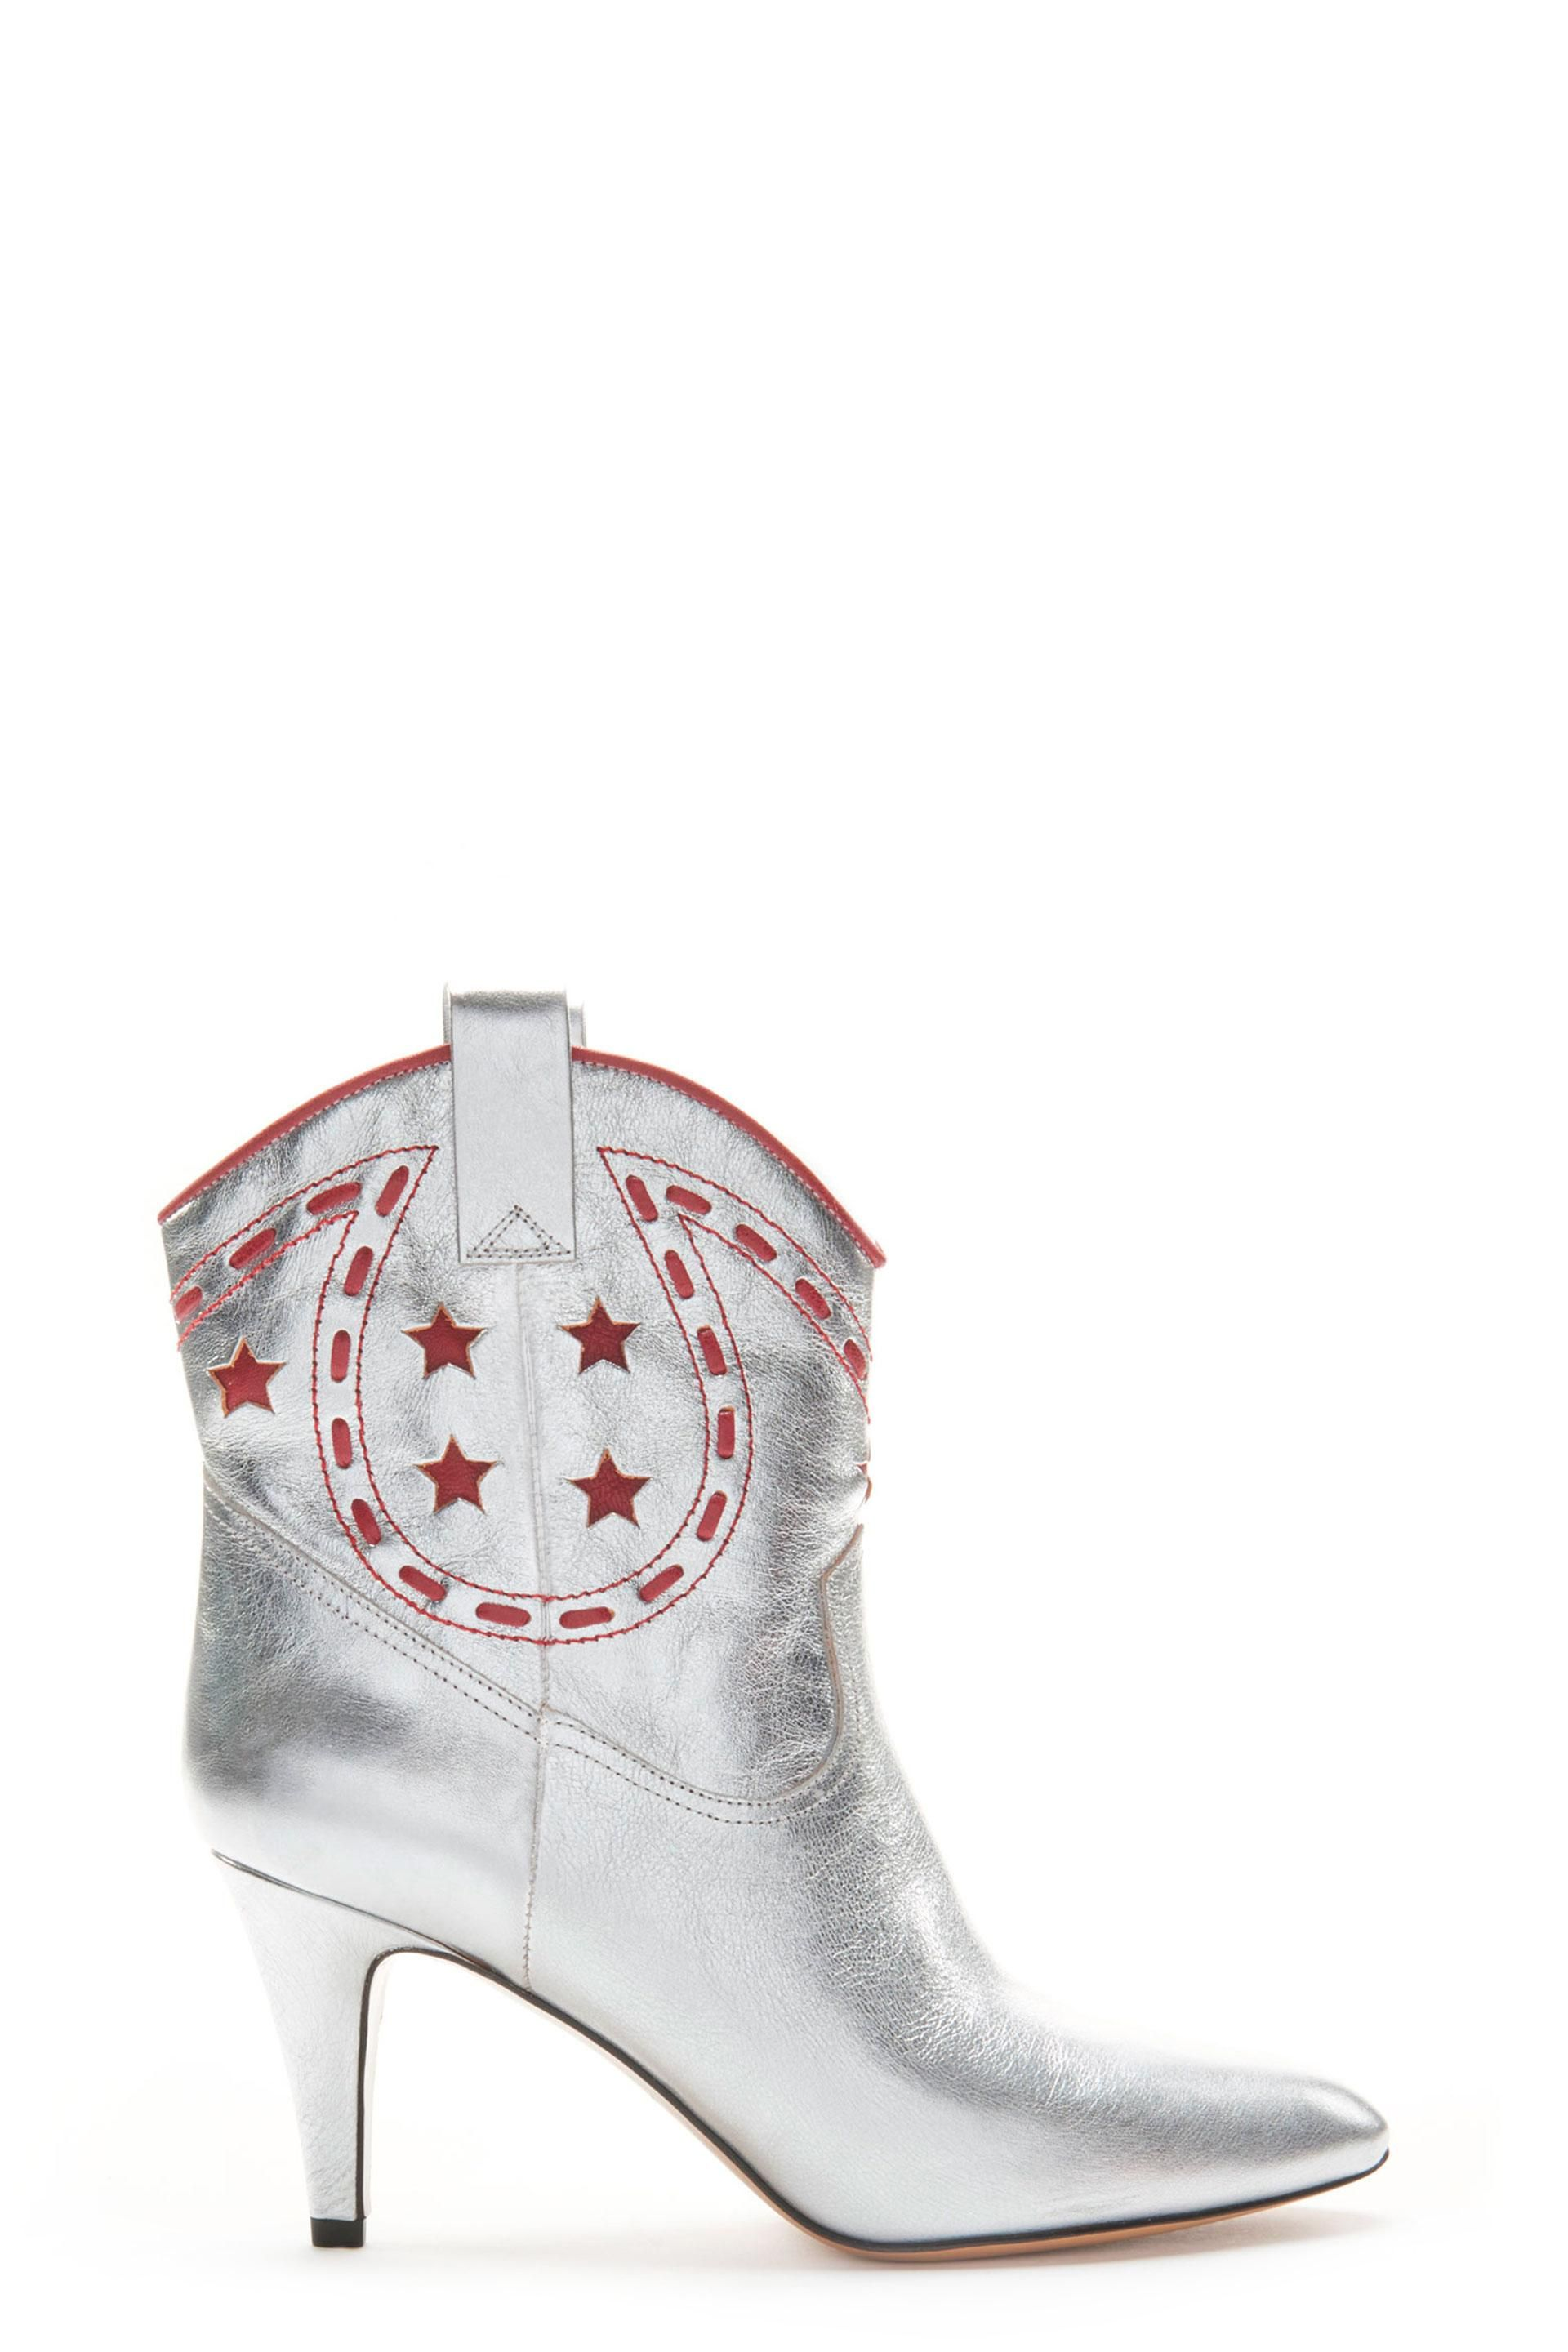 The Marc Jacobs Georgia Cowboy Boot is crafted from goat leather with a smooth finish and contrast stitch detail on the upper. The boot is a slip on with leather pull tabs on both sides. True cowboy boot silhouette with a pointed toe. Heel: 75MMHalf sizes available from 35-41.100% Goat Leather